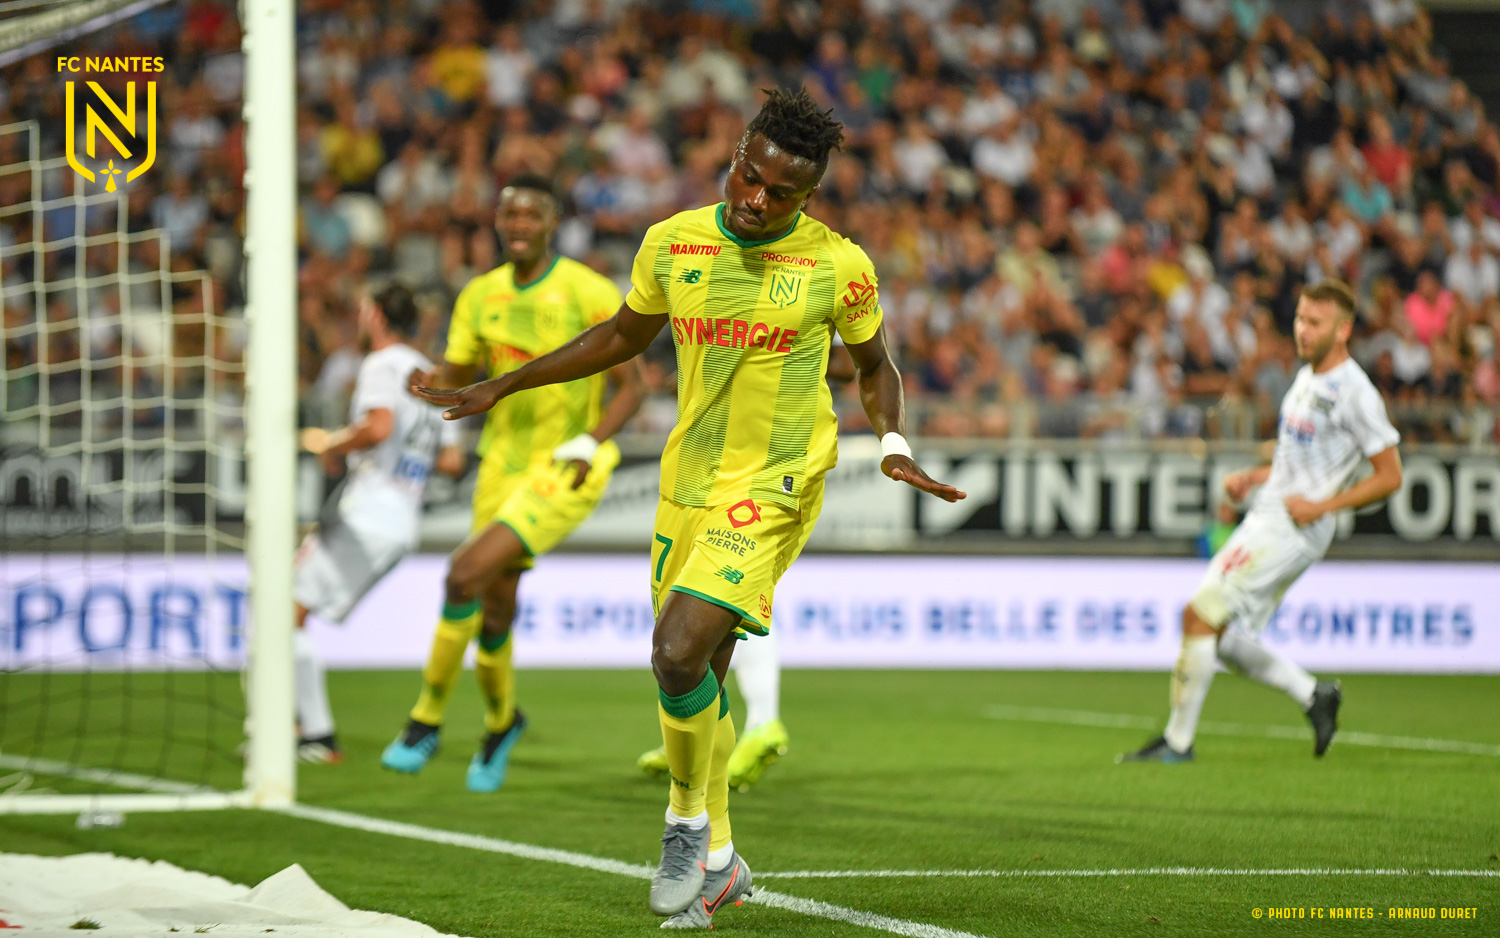 Simon Eager To Shine For Nantes With Improved Form